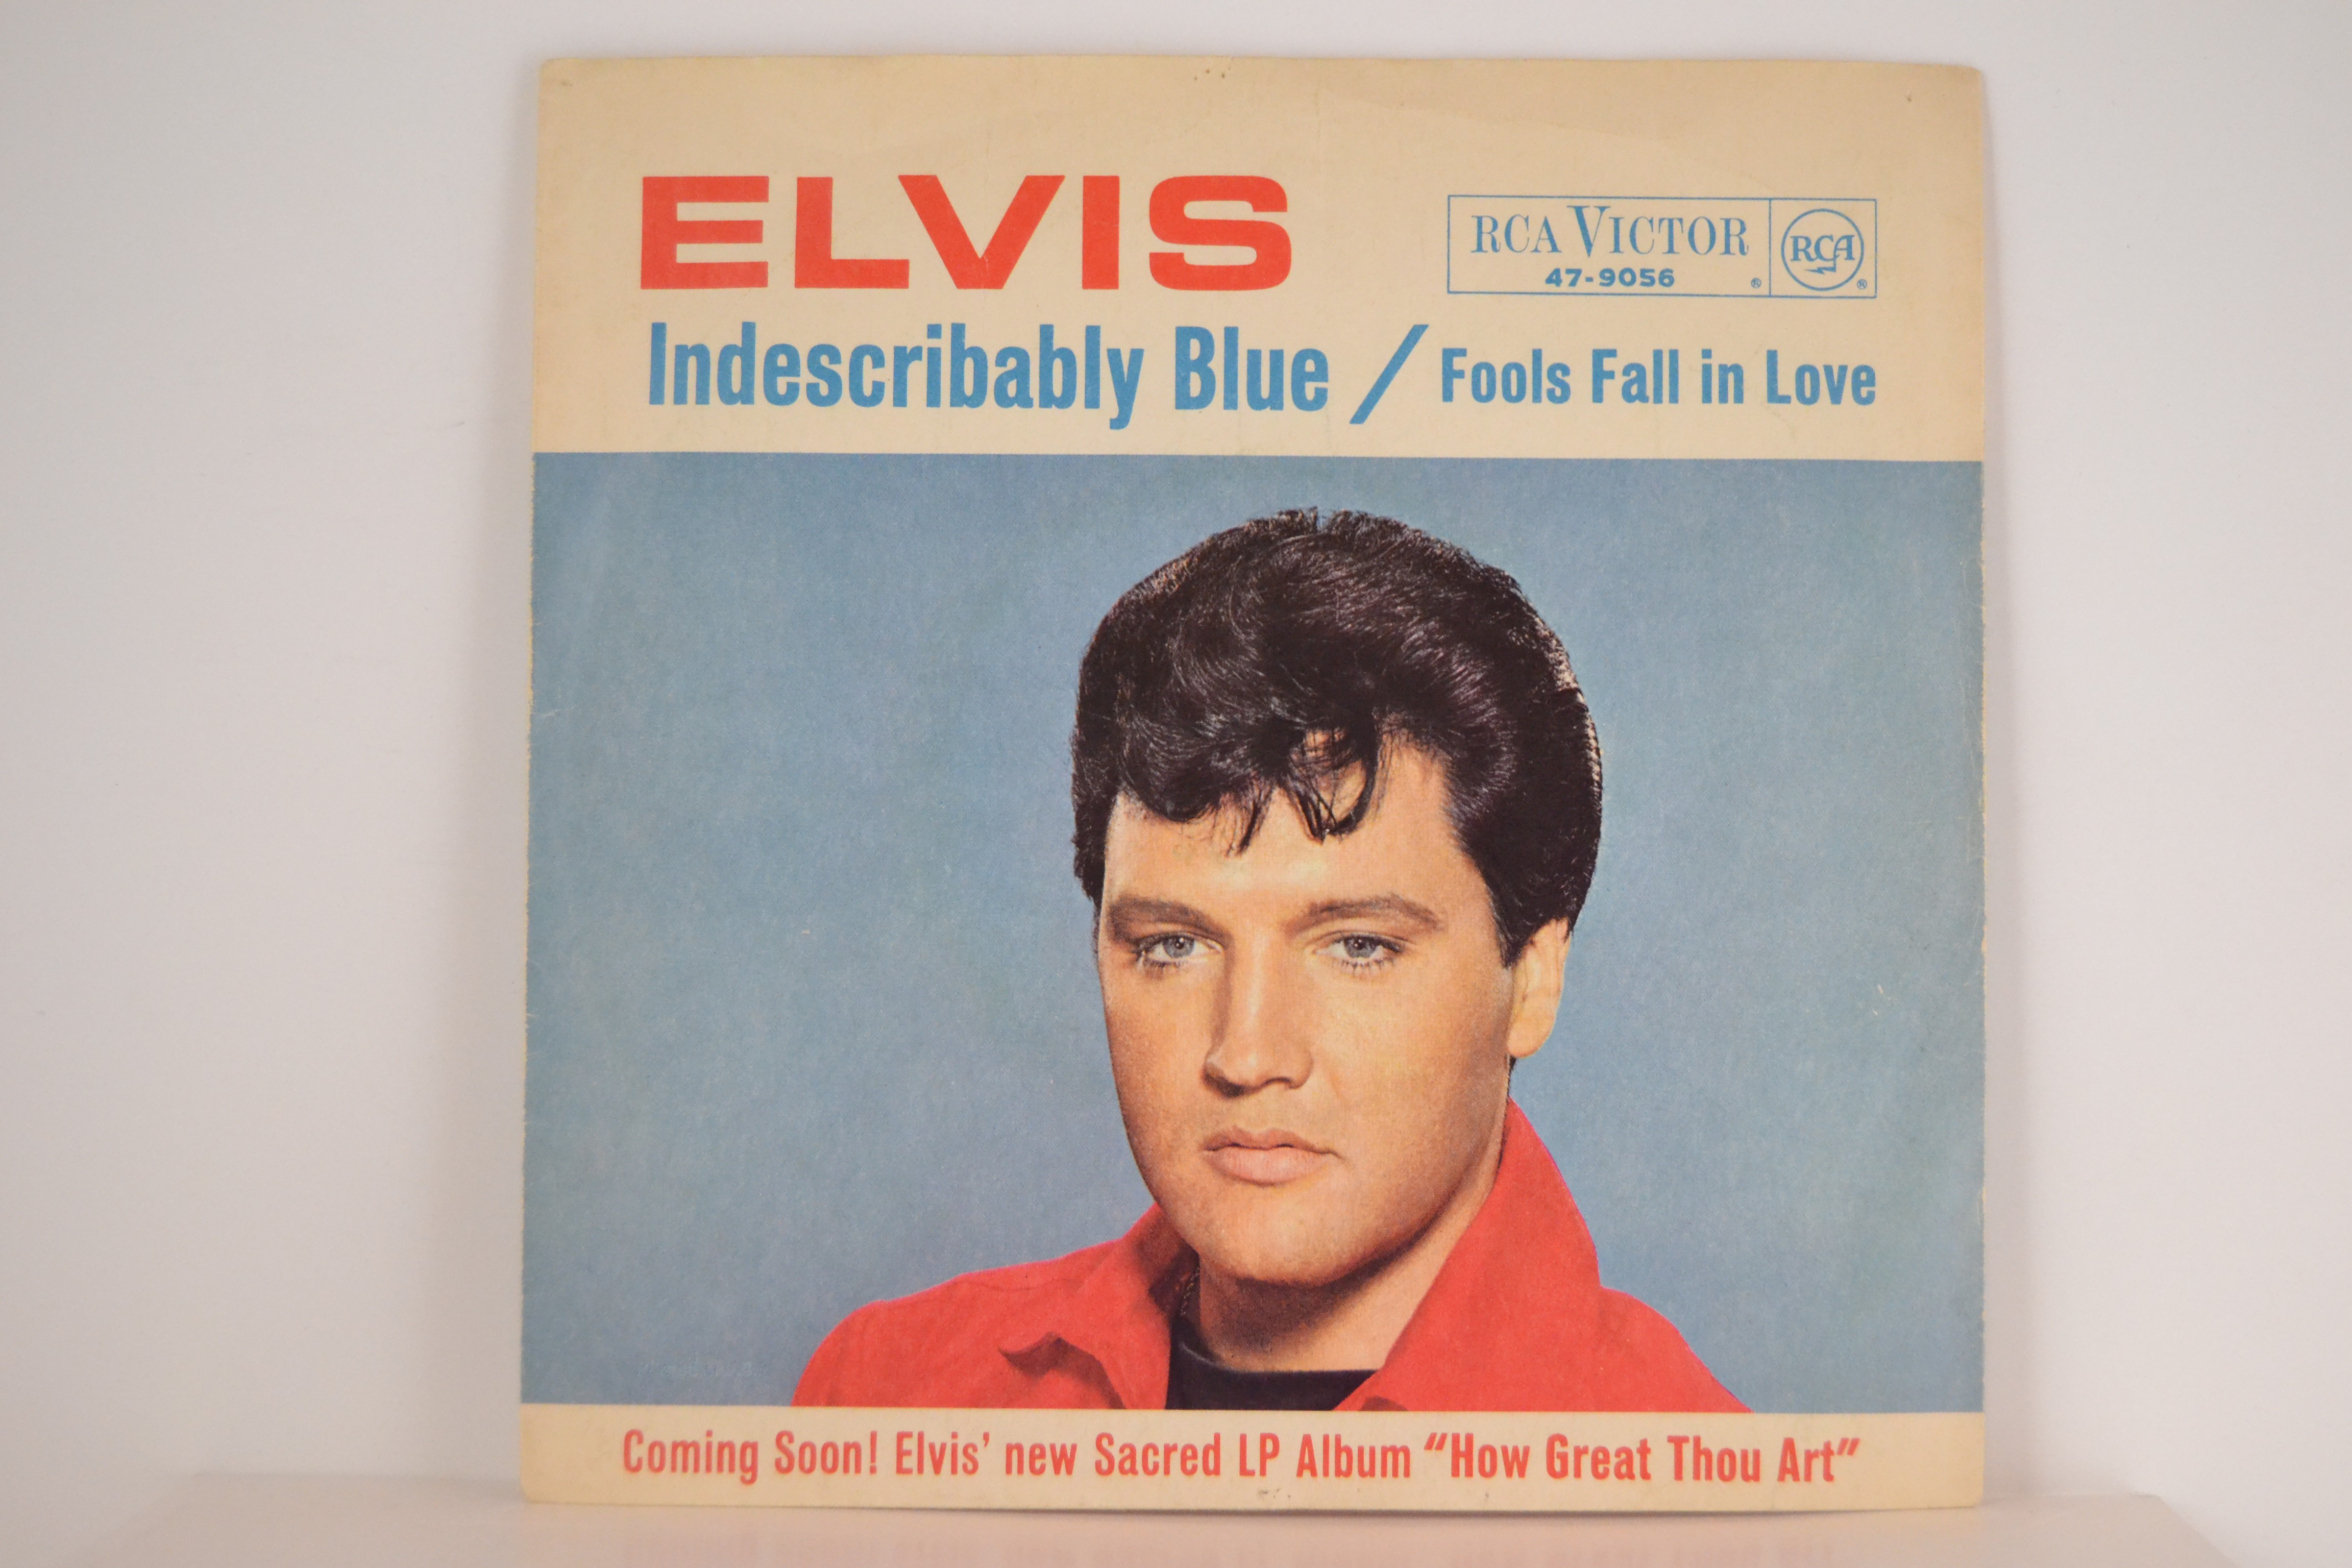 ELVIS PRESLEY : Indescribably blue / Fools fall in love